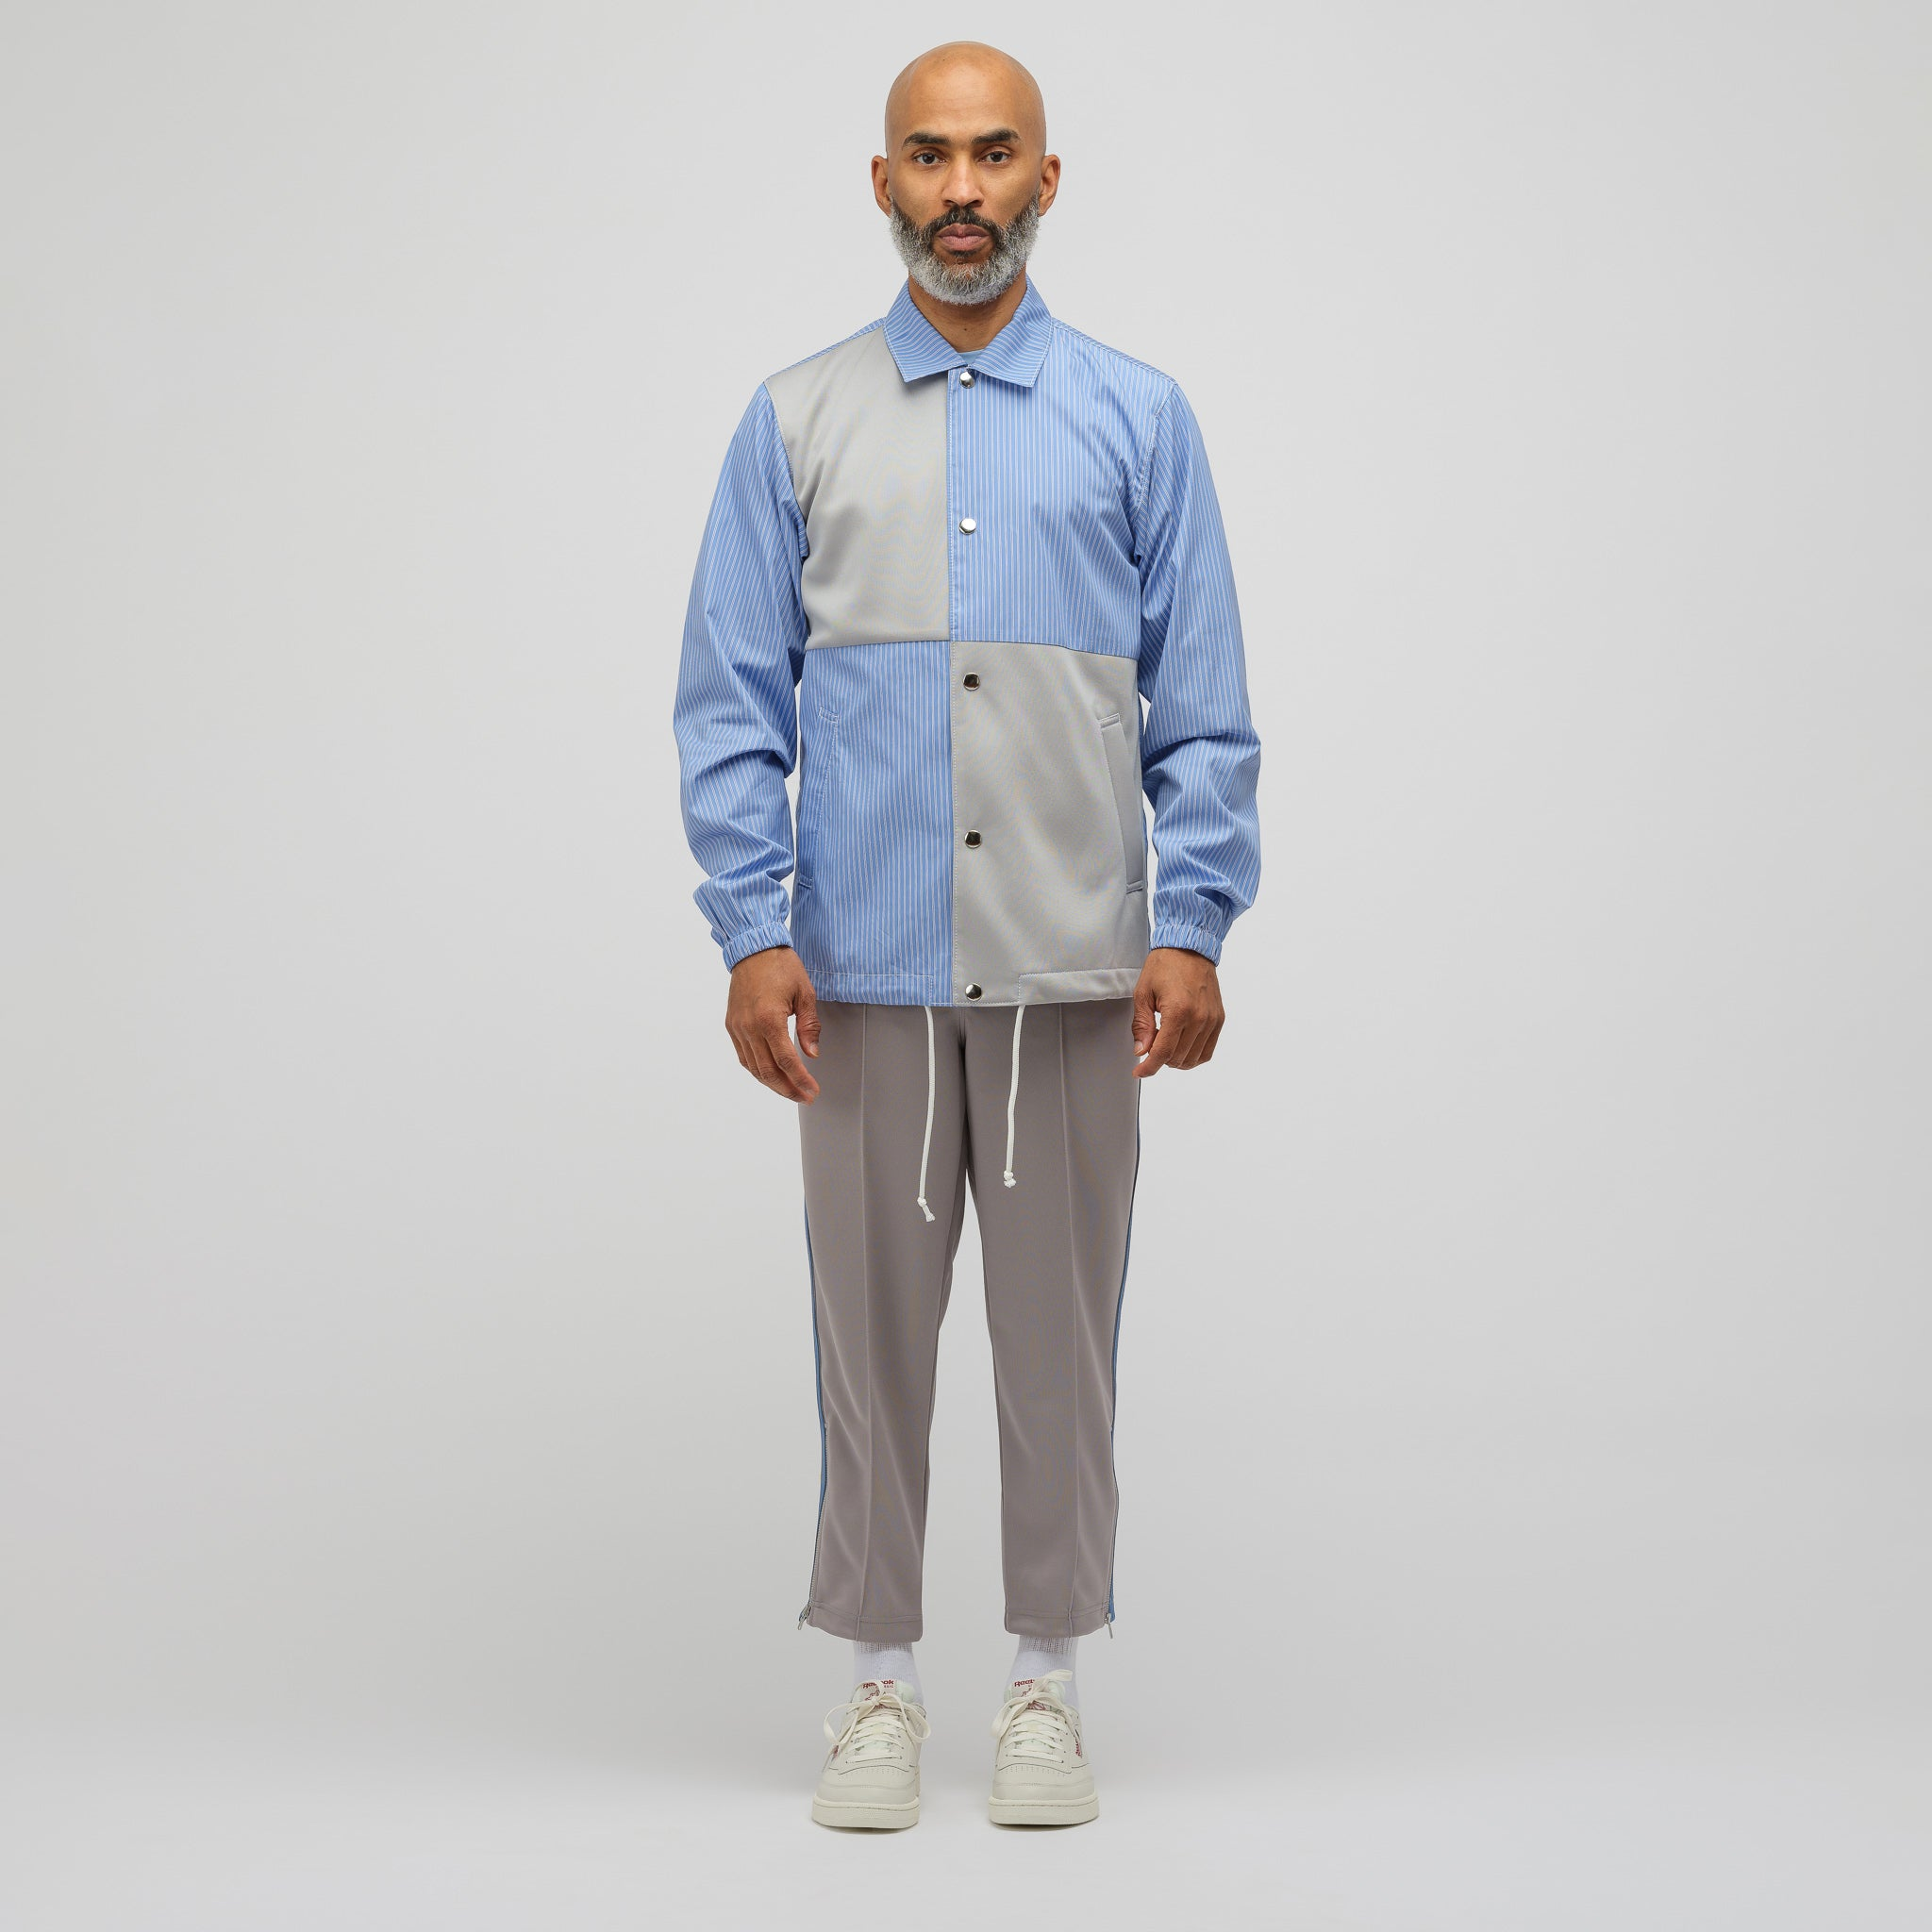 Patchwork Coach's Jacket in Blue/Grey